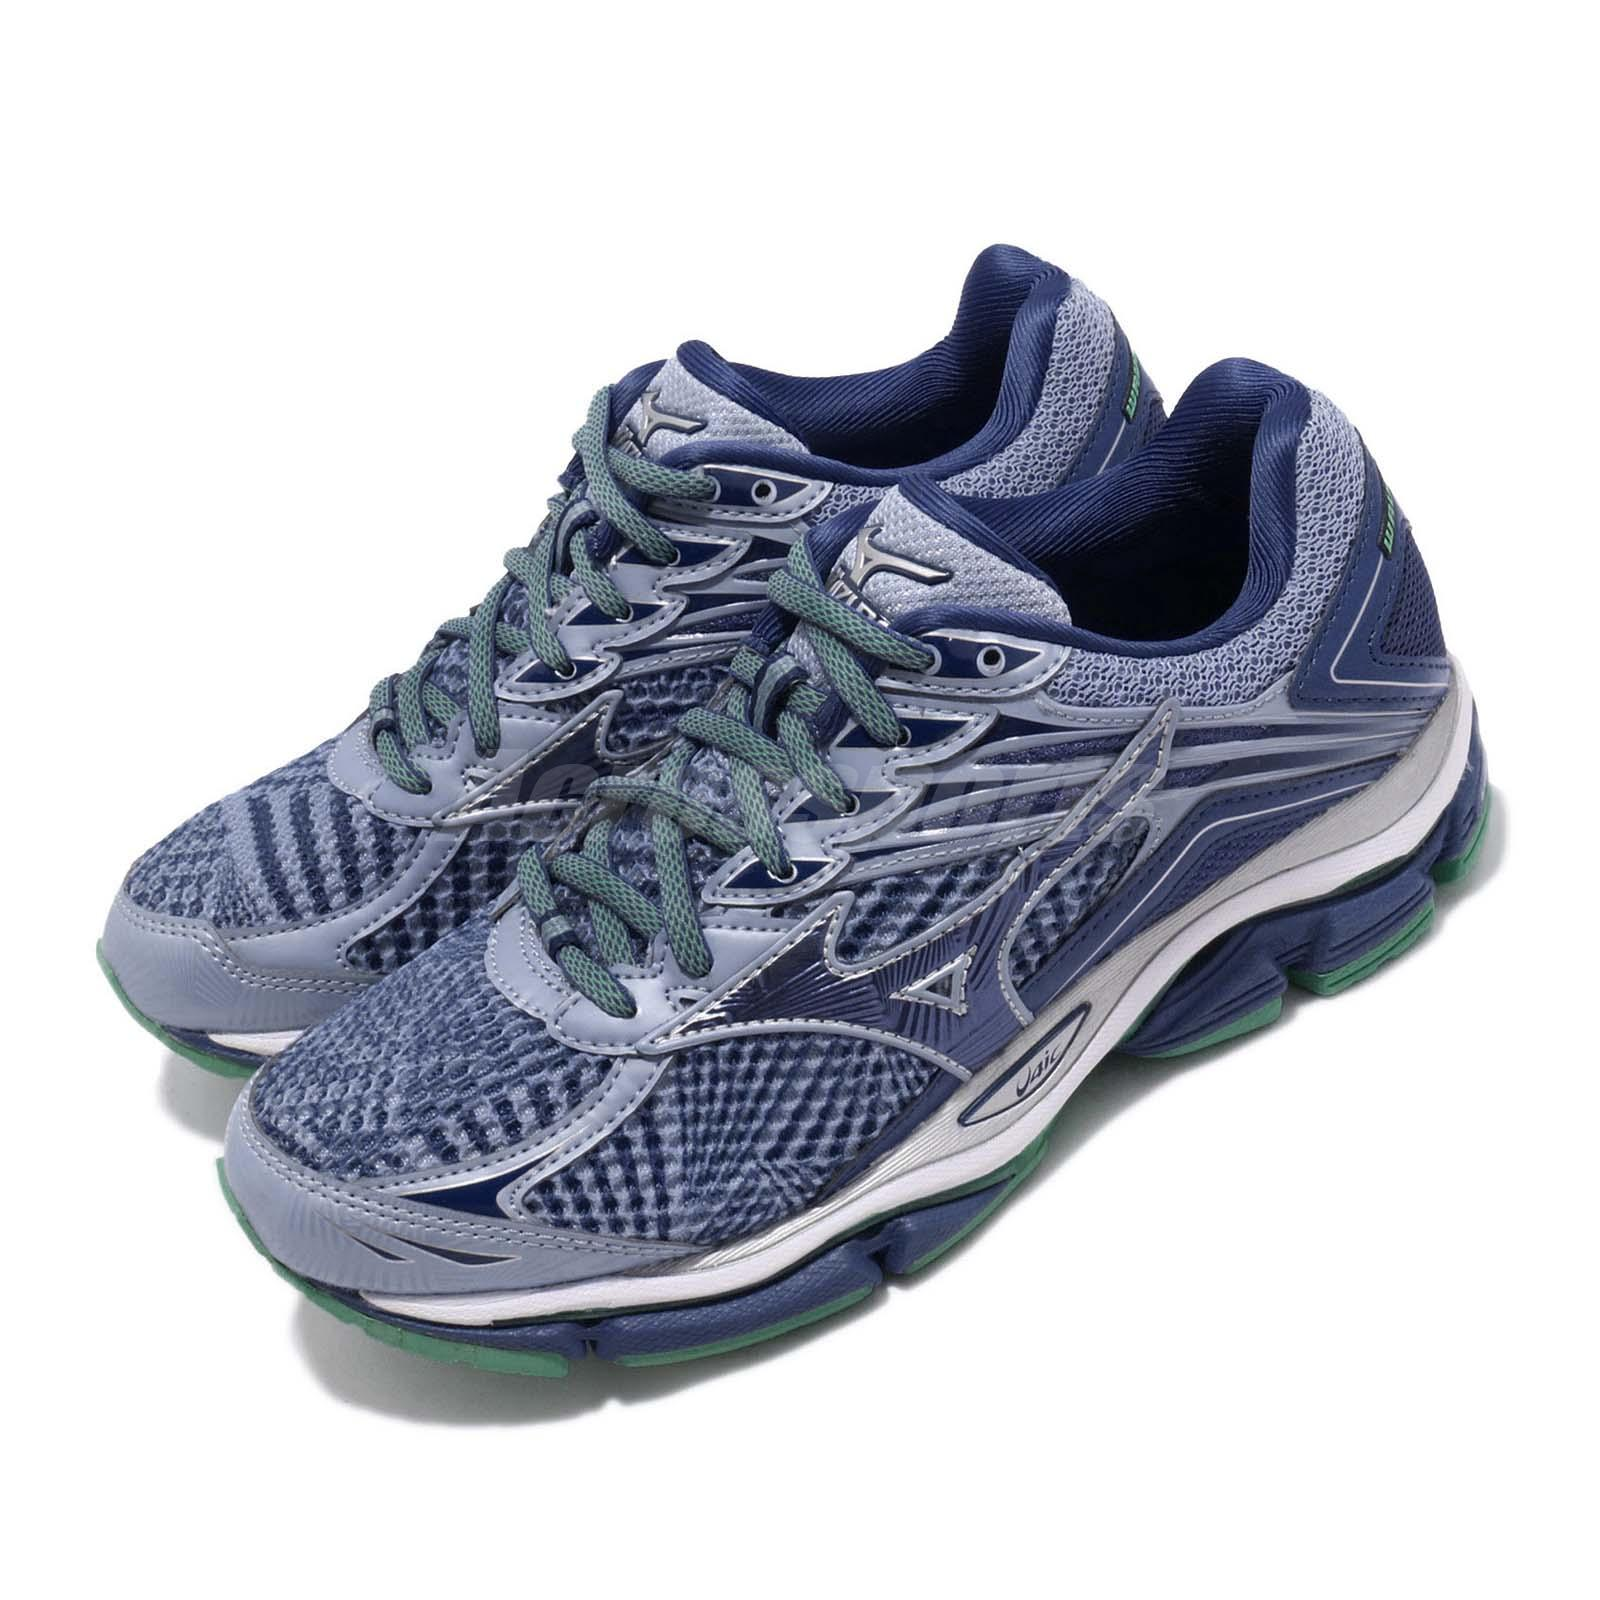 fotos oficiales 26bbd 8ce91 Details about Mizuno Wave Enigma 6 Purple Blue Green Women Running Shoes  Sneakers J1GD1611-27